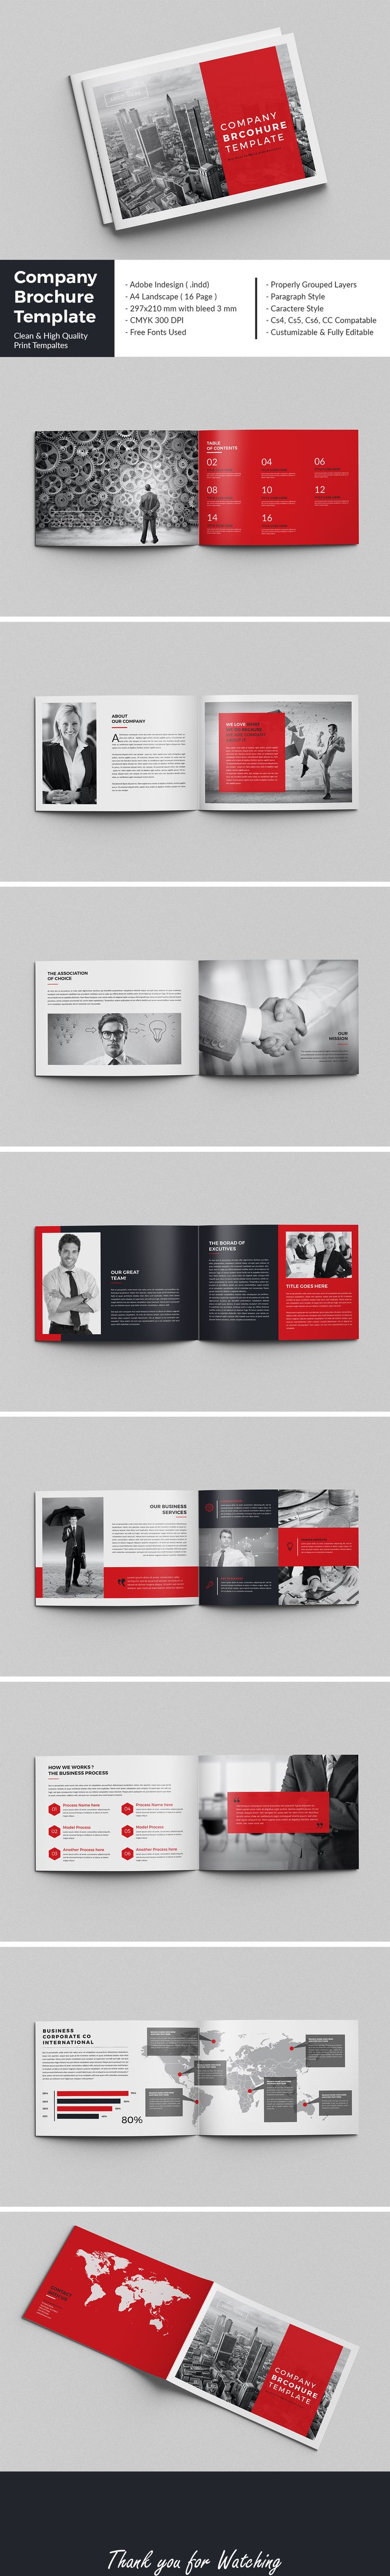 This is one of your items.Company Brochure Template - Corporate BrochuresShare Facebook Google Plus Twitter PinterestAdd to FavoritesIn CollectionCompany Brochure TemplateThis InDesign Brochure is Clean & Porfessional. Create your company's documen…